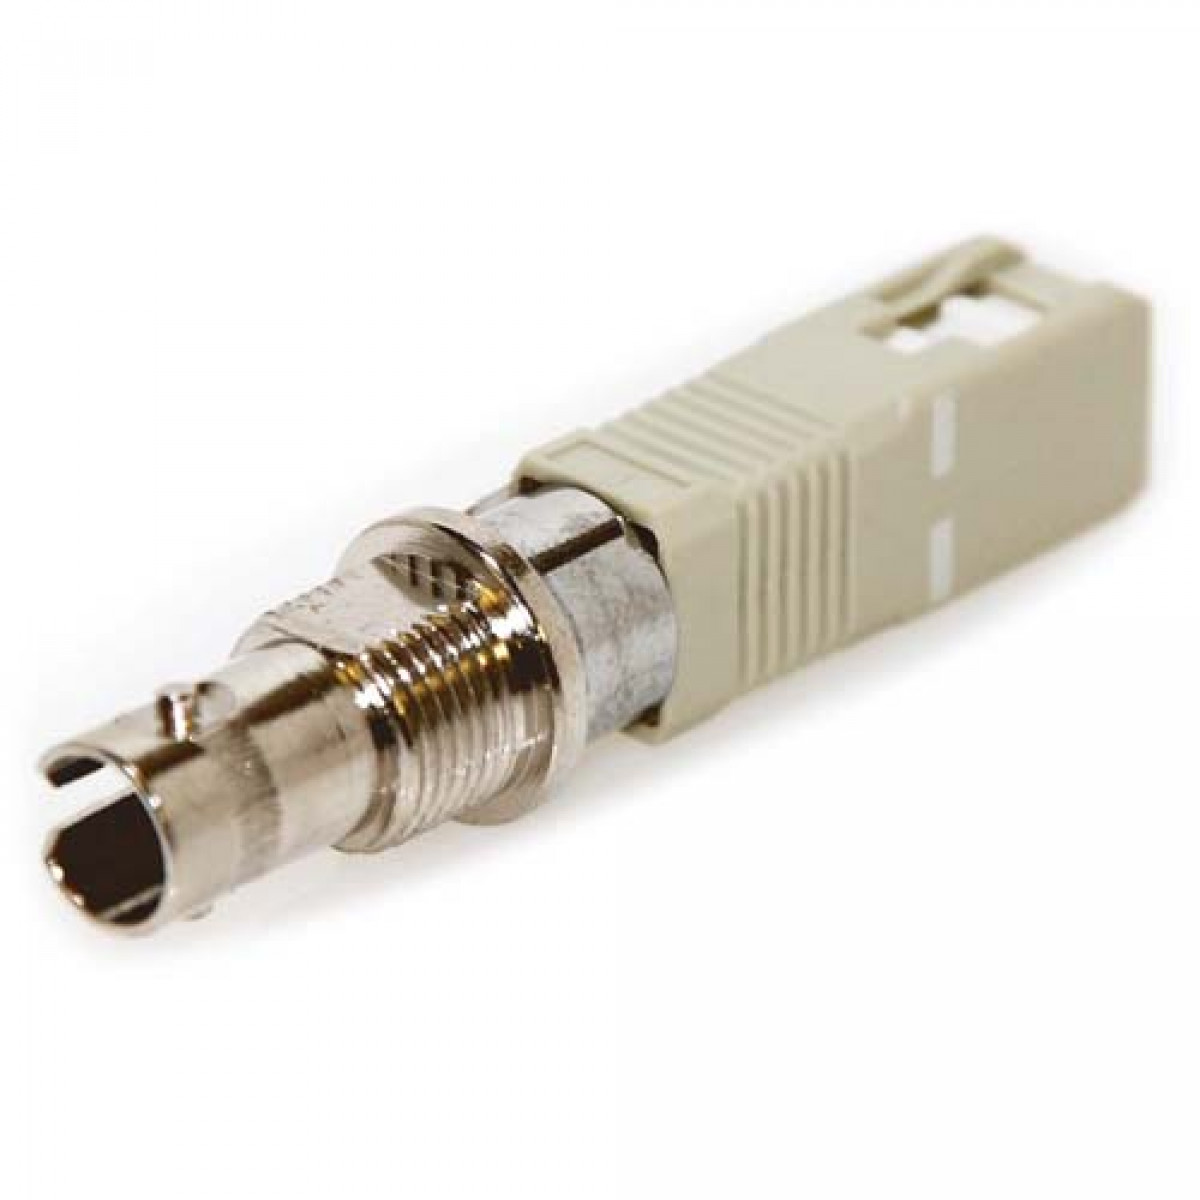 St Female To Sc Male 50 125 Multimode Simplex Adapter